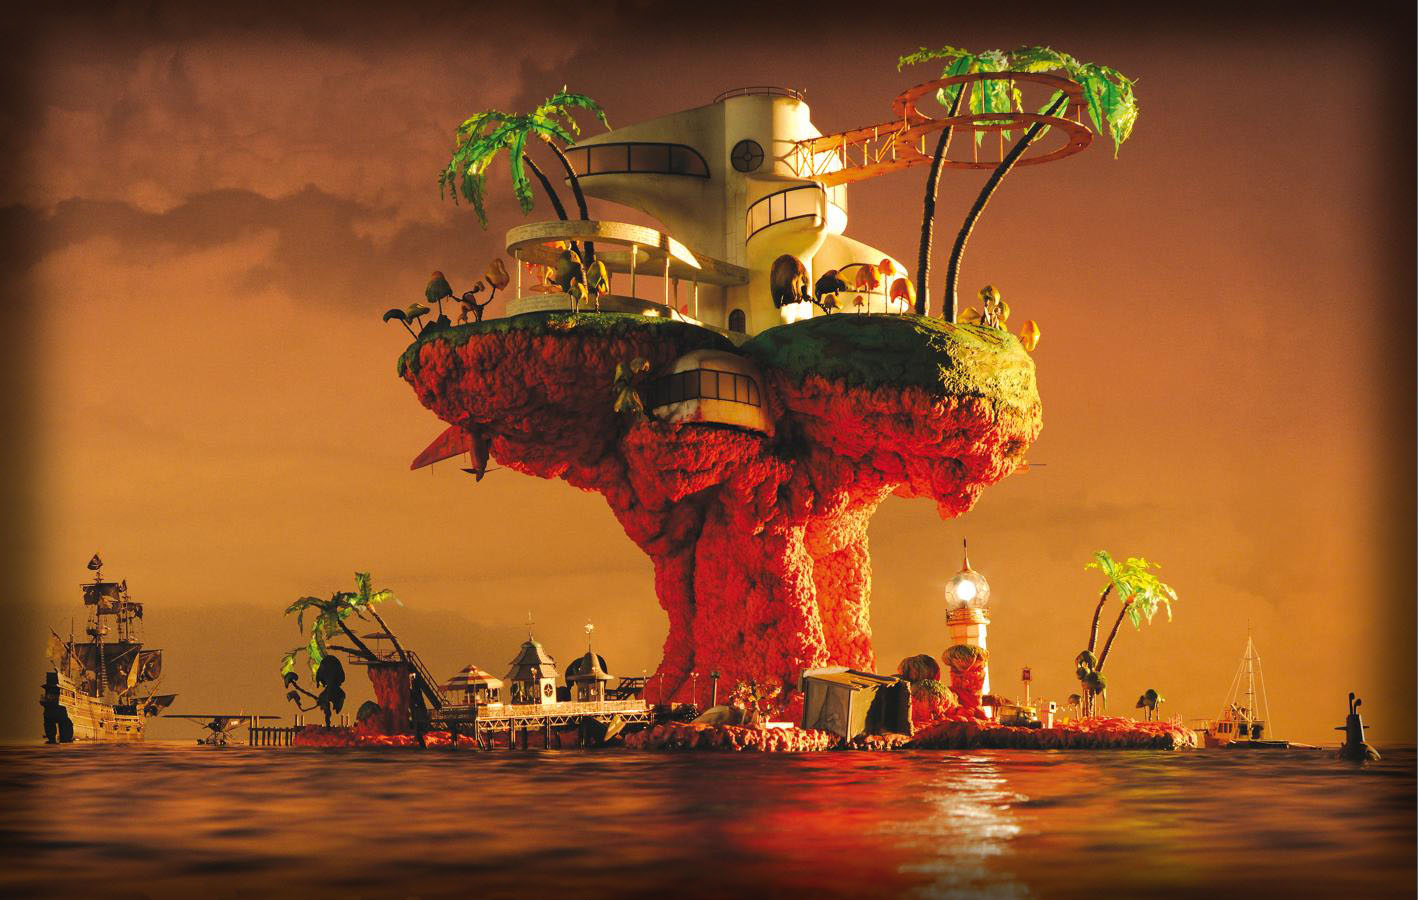 gorillaz wallpapers plastic beach - photo #1